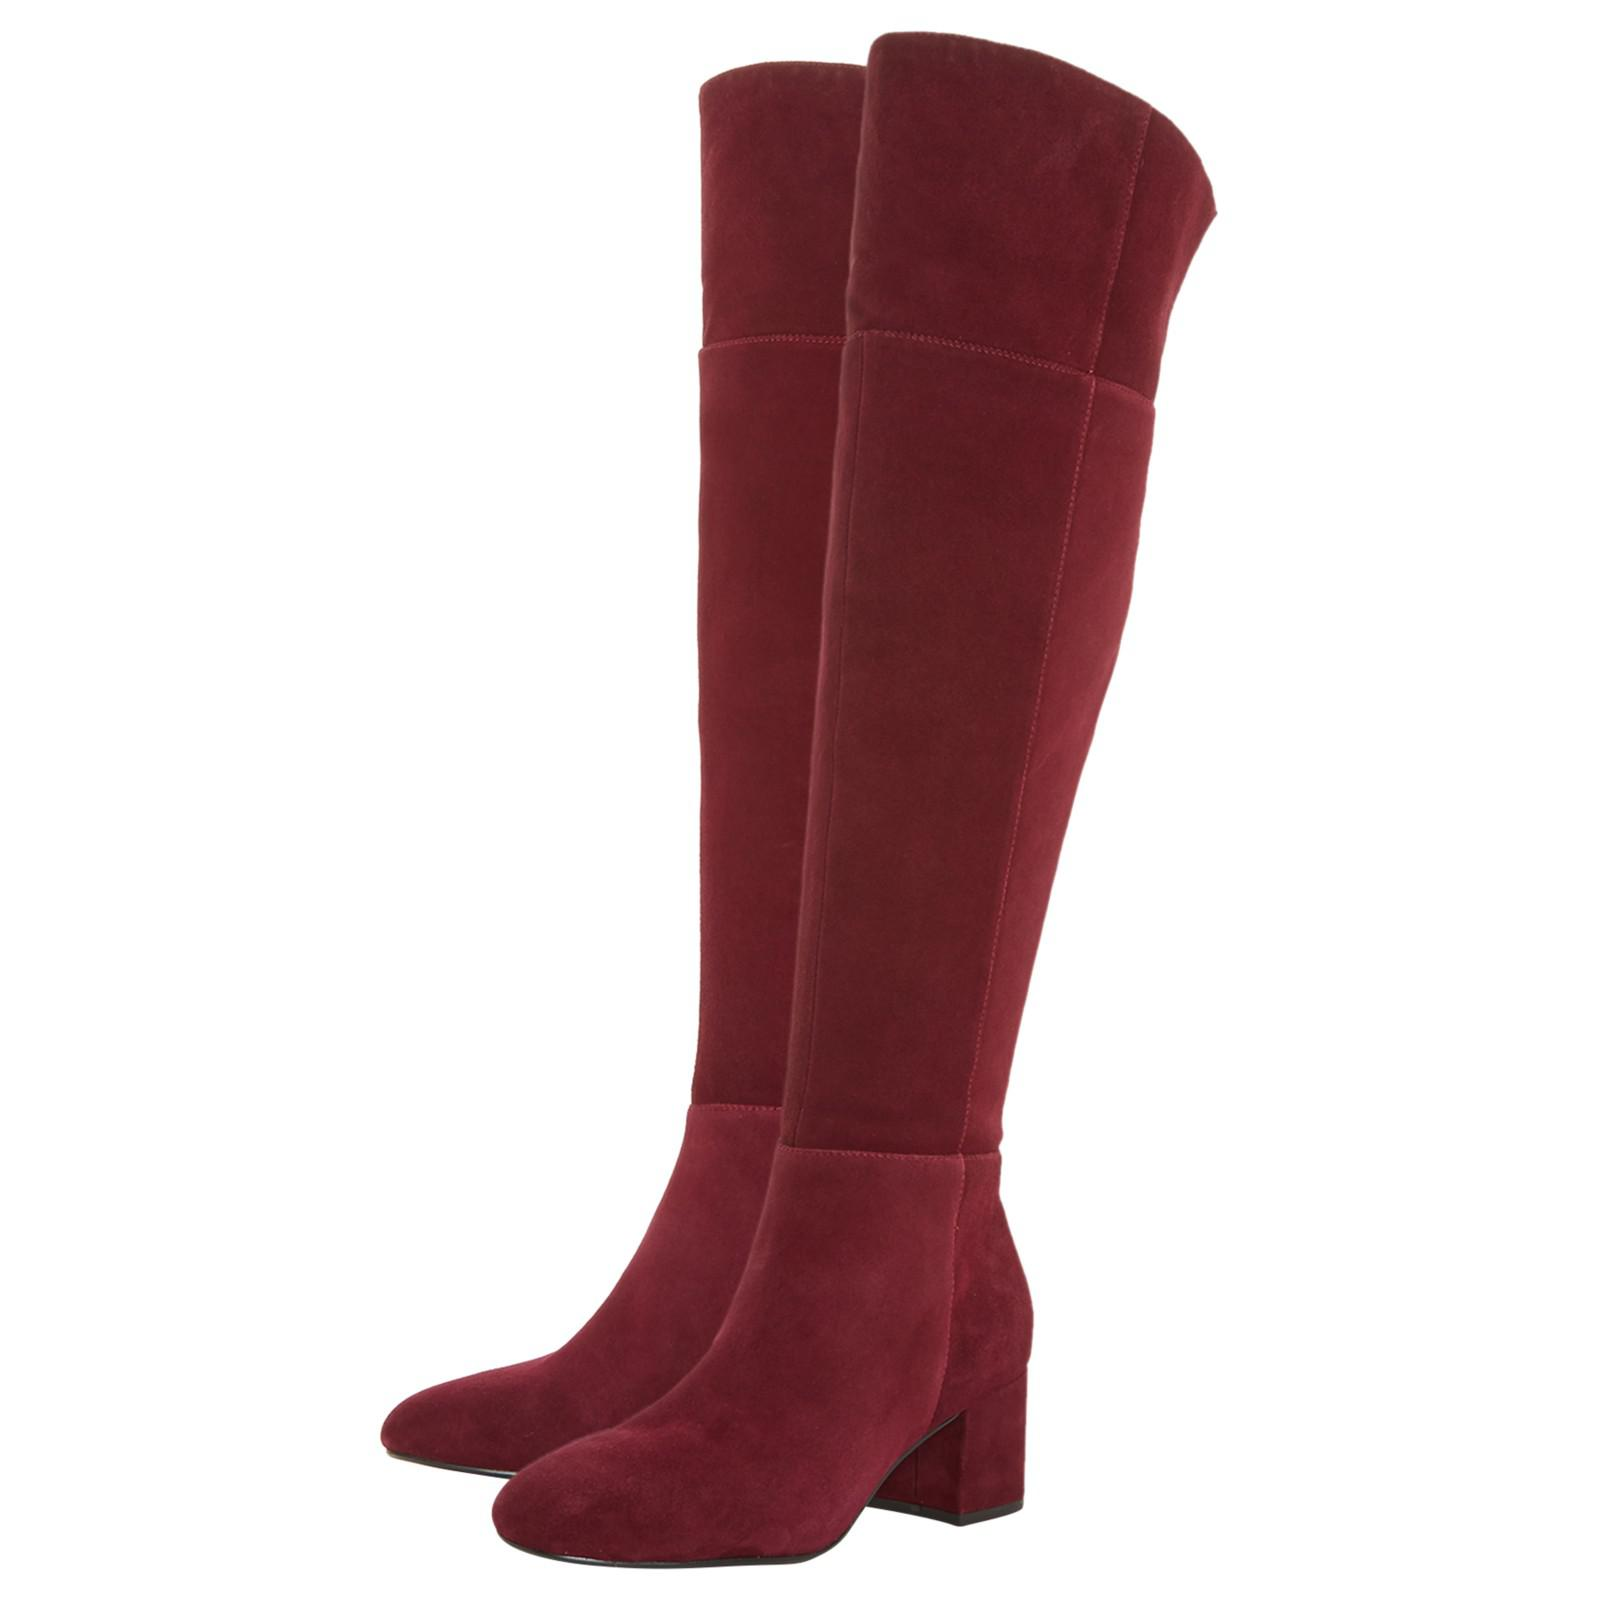 Dune Spears Knee High Suede Heeled Boot in Burgundy (Red)